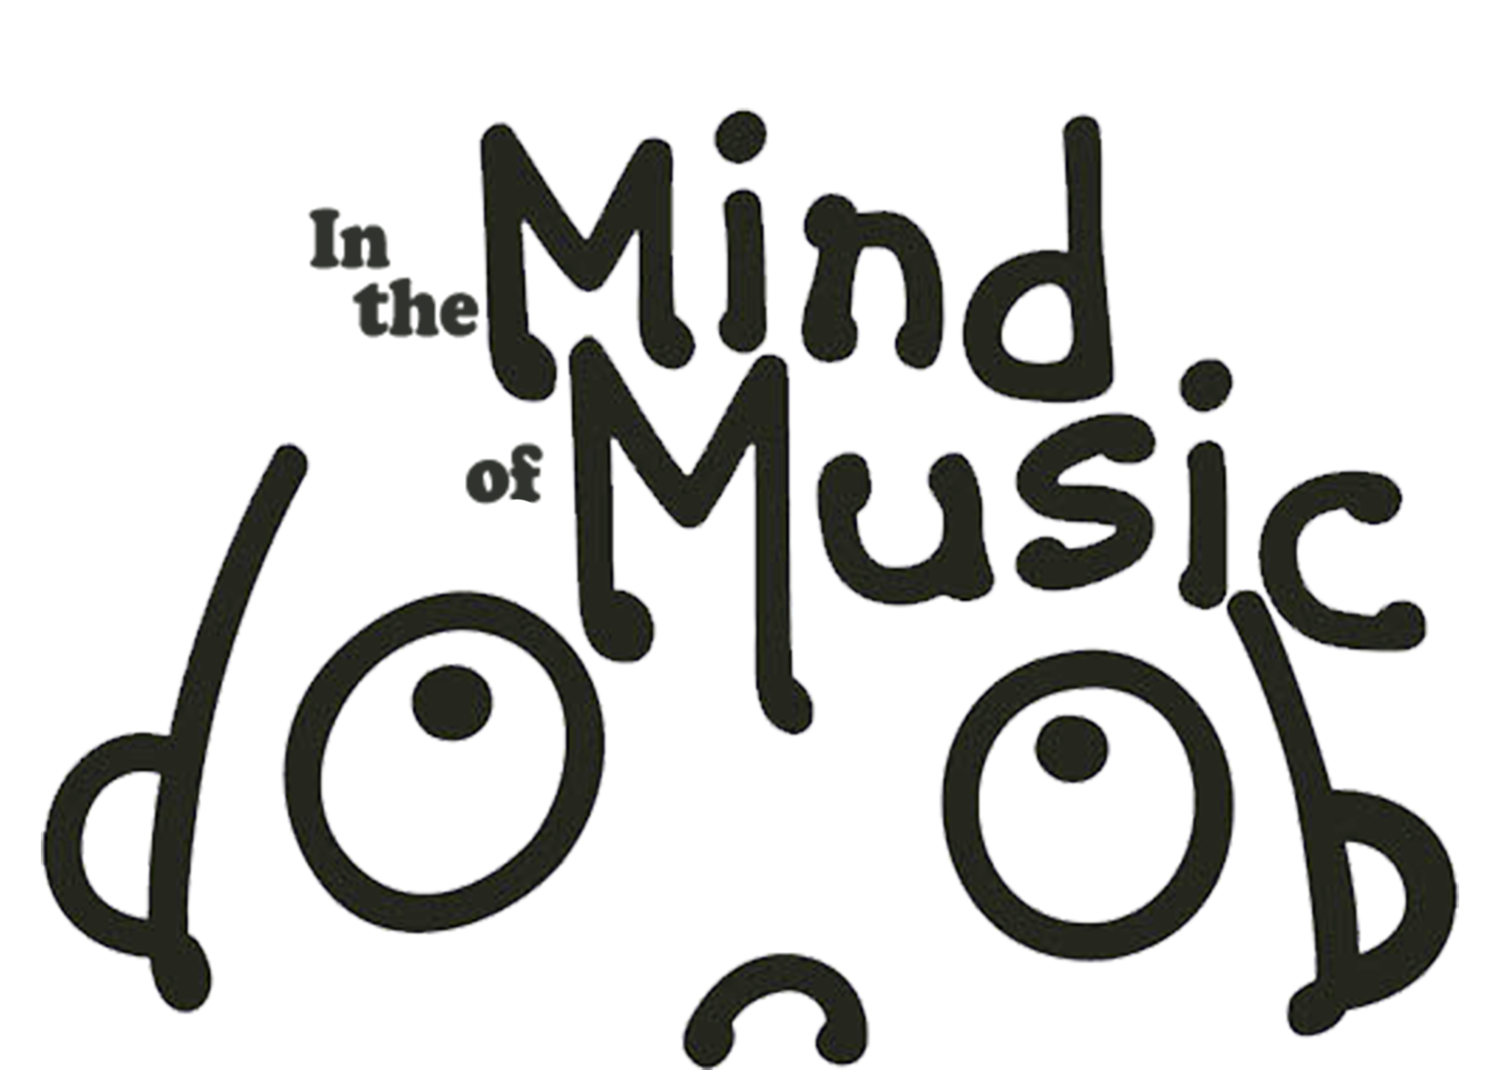 In the Mind of Music